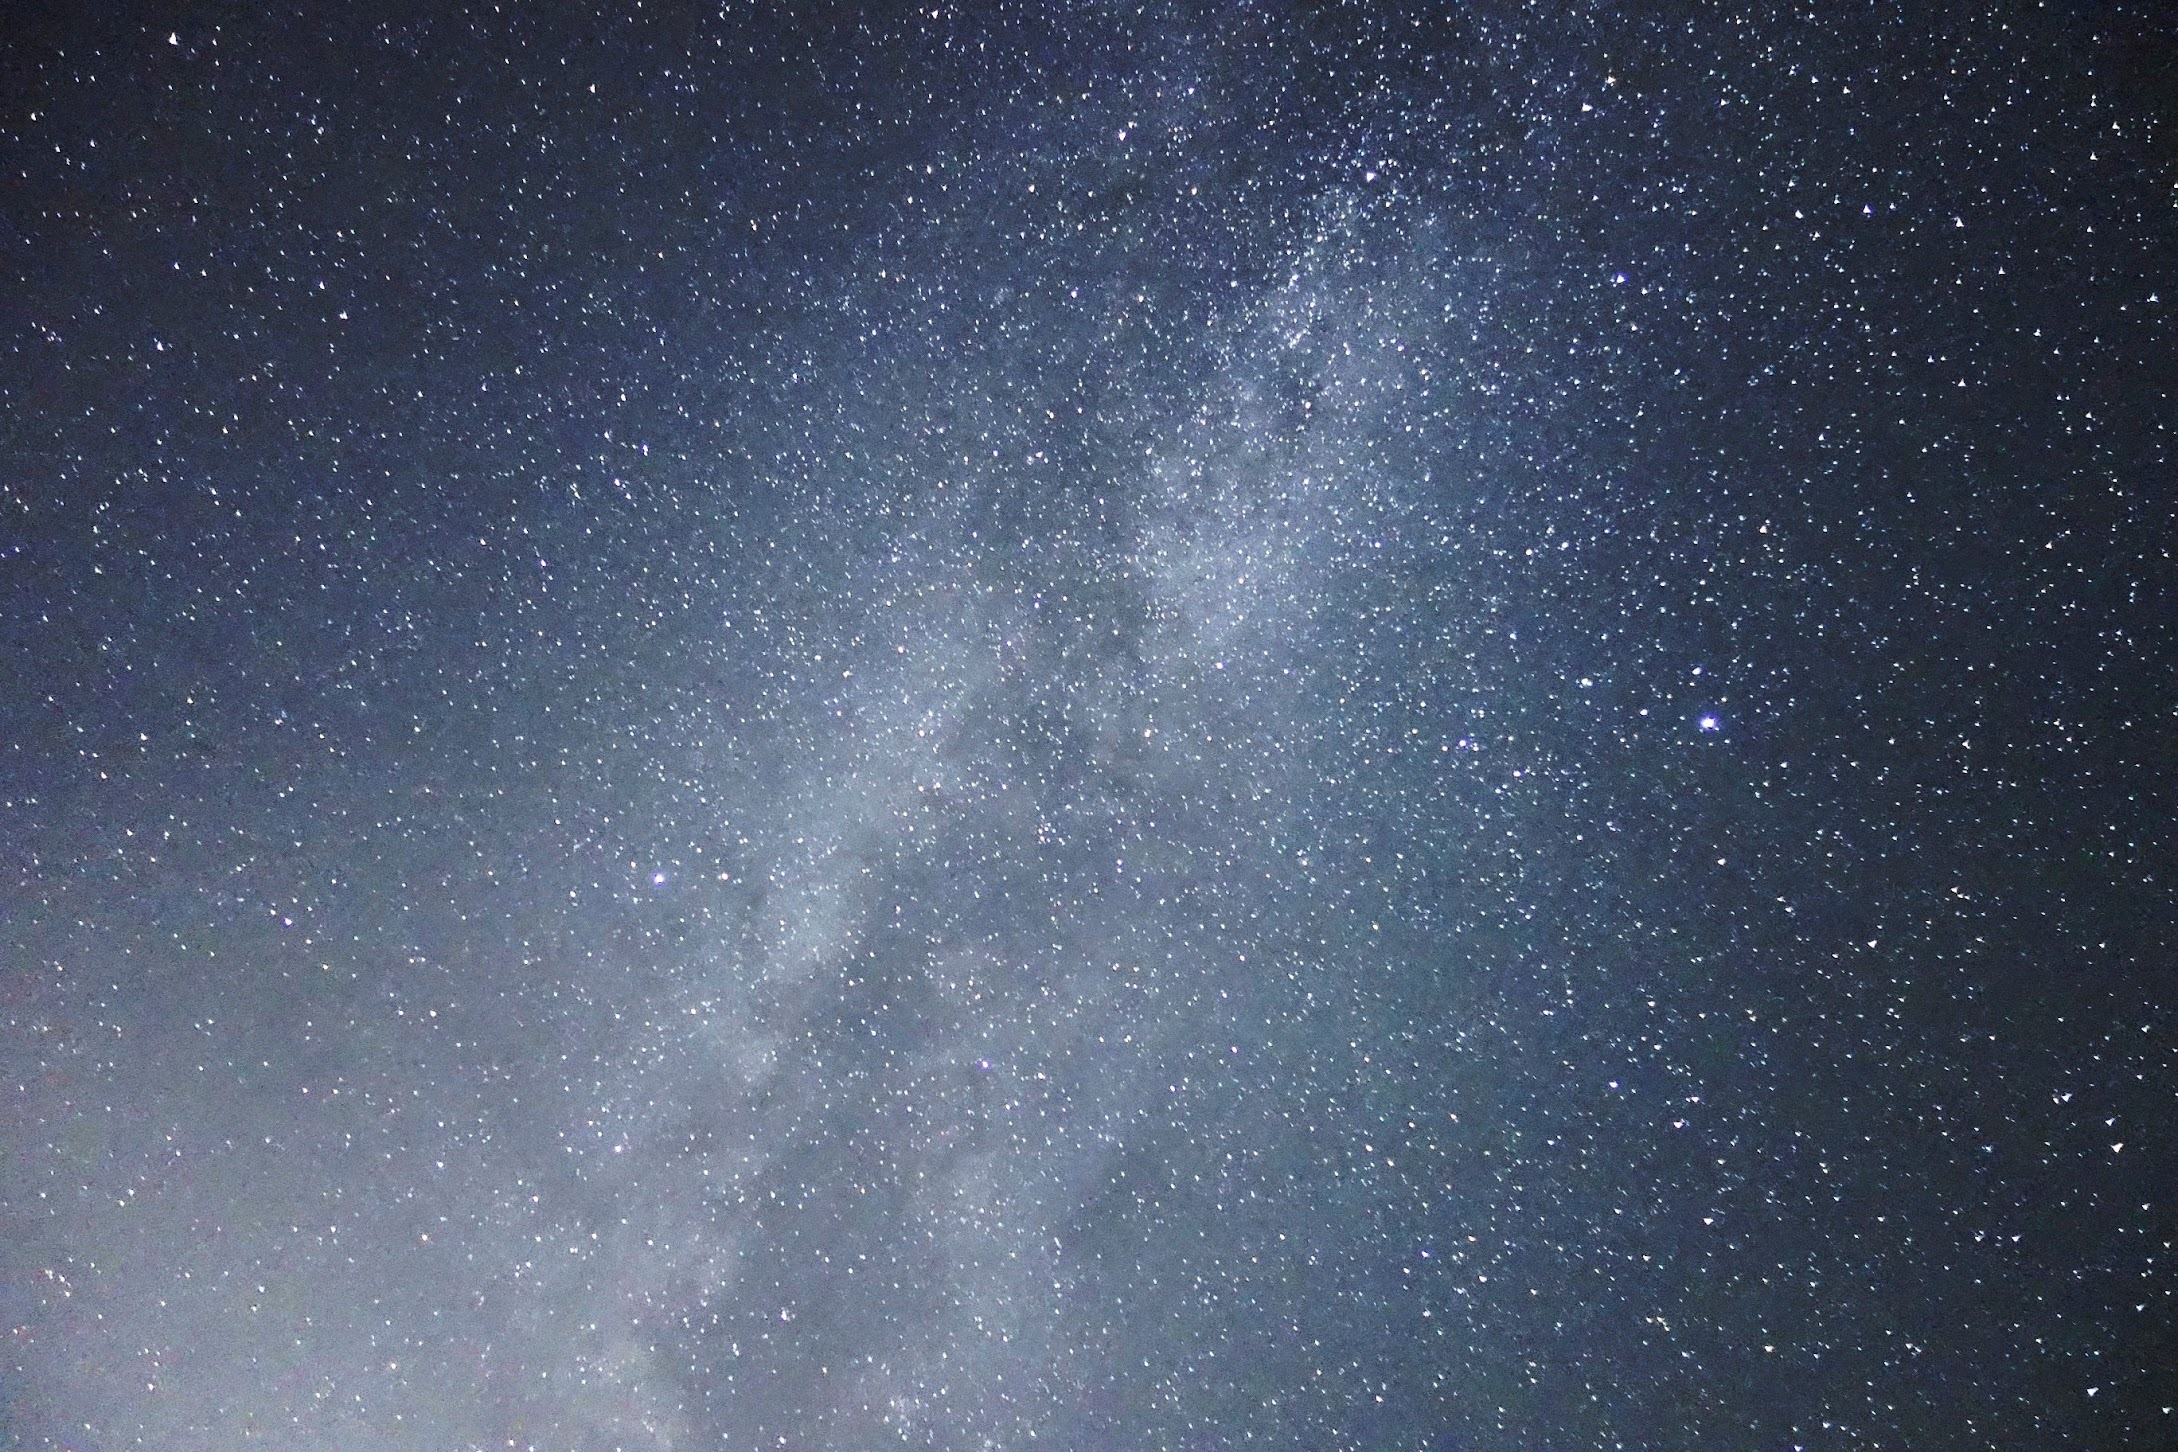 The Milky Way with Sony Cyber-shot DSC-RX100